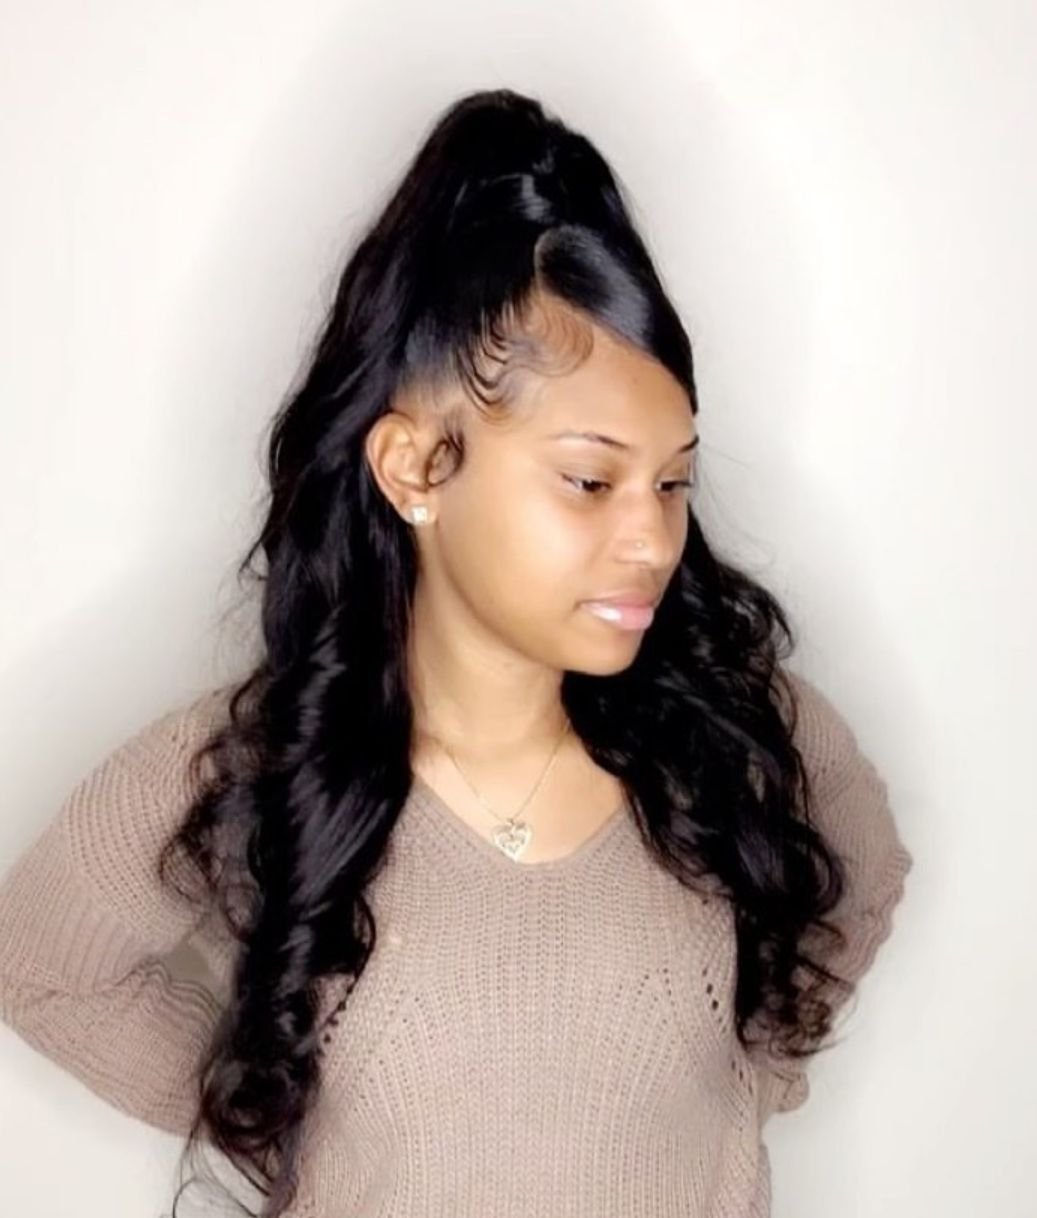 Hair Laid Pin Kjvougee Loose Hairstyles Hair Ponytail Styles Wig Hairstyles